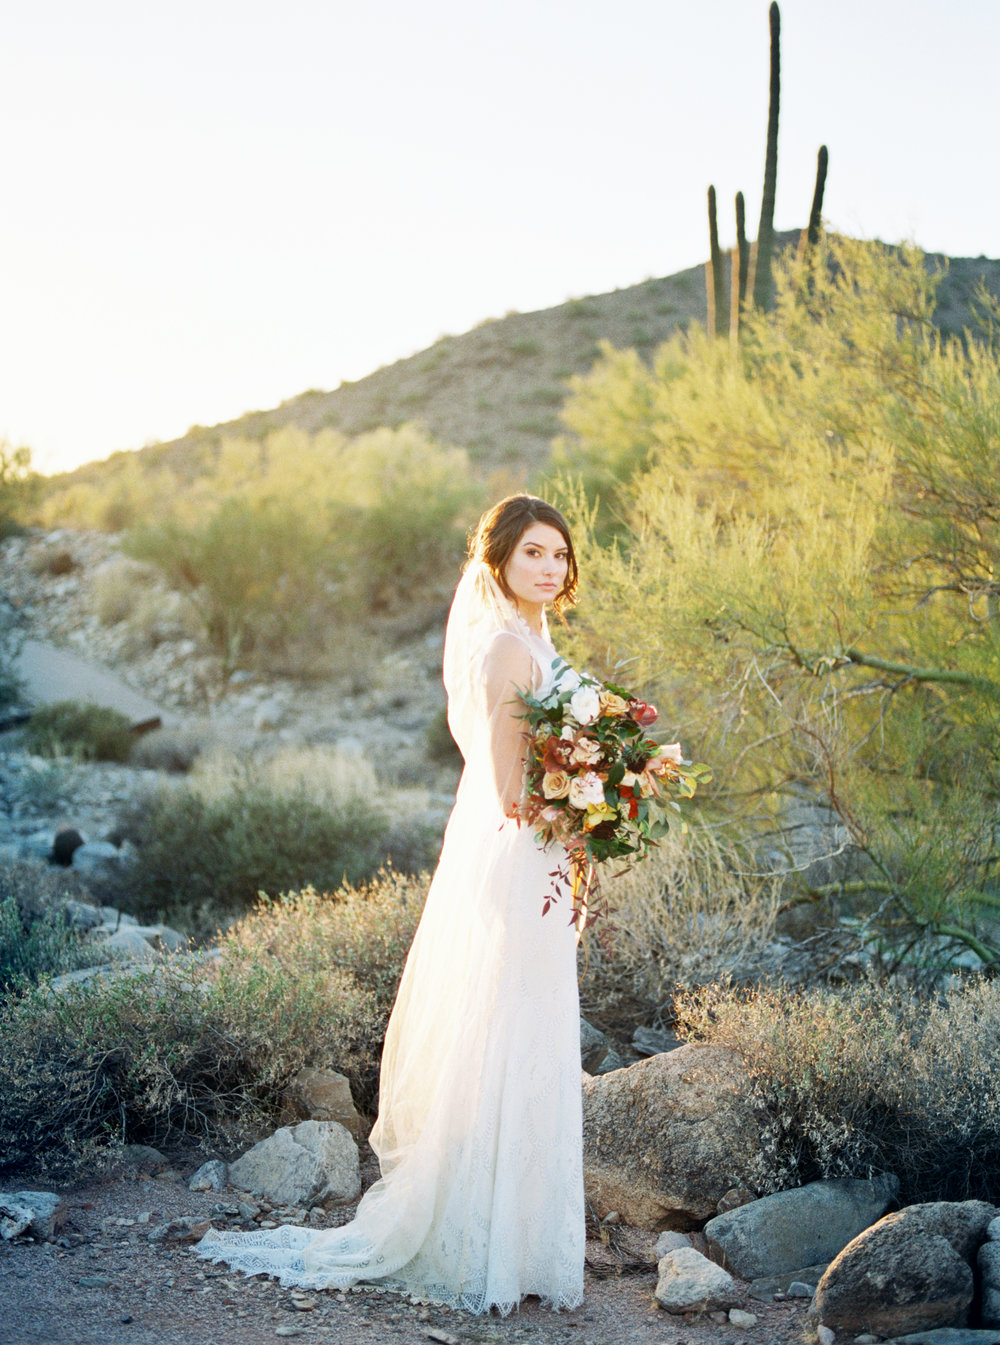 Warm Scottsdale Arizona Wedding Inspiration